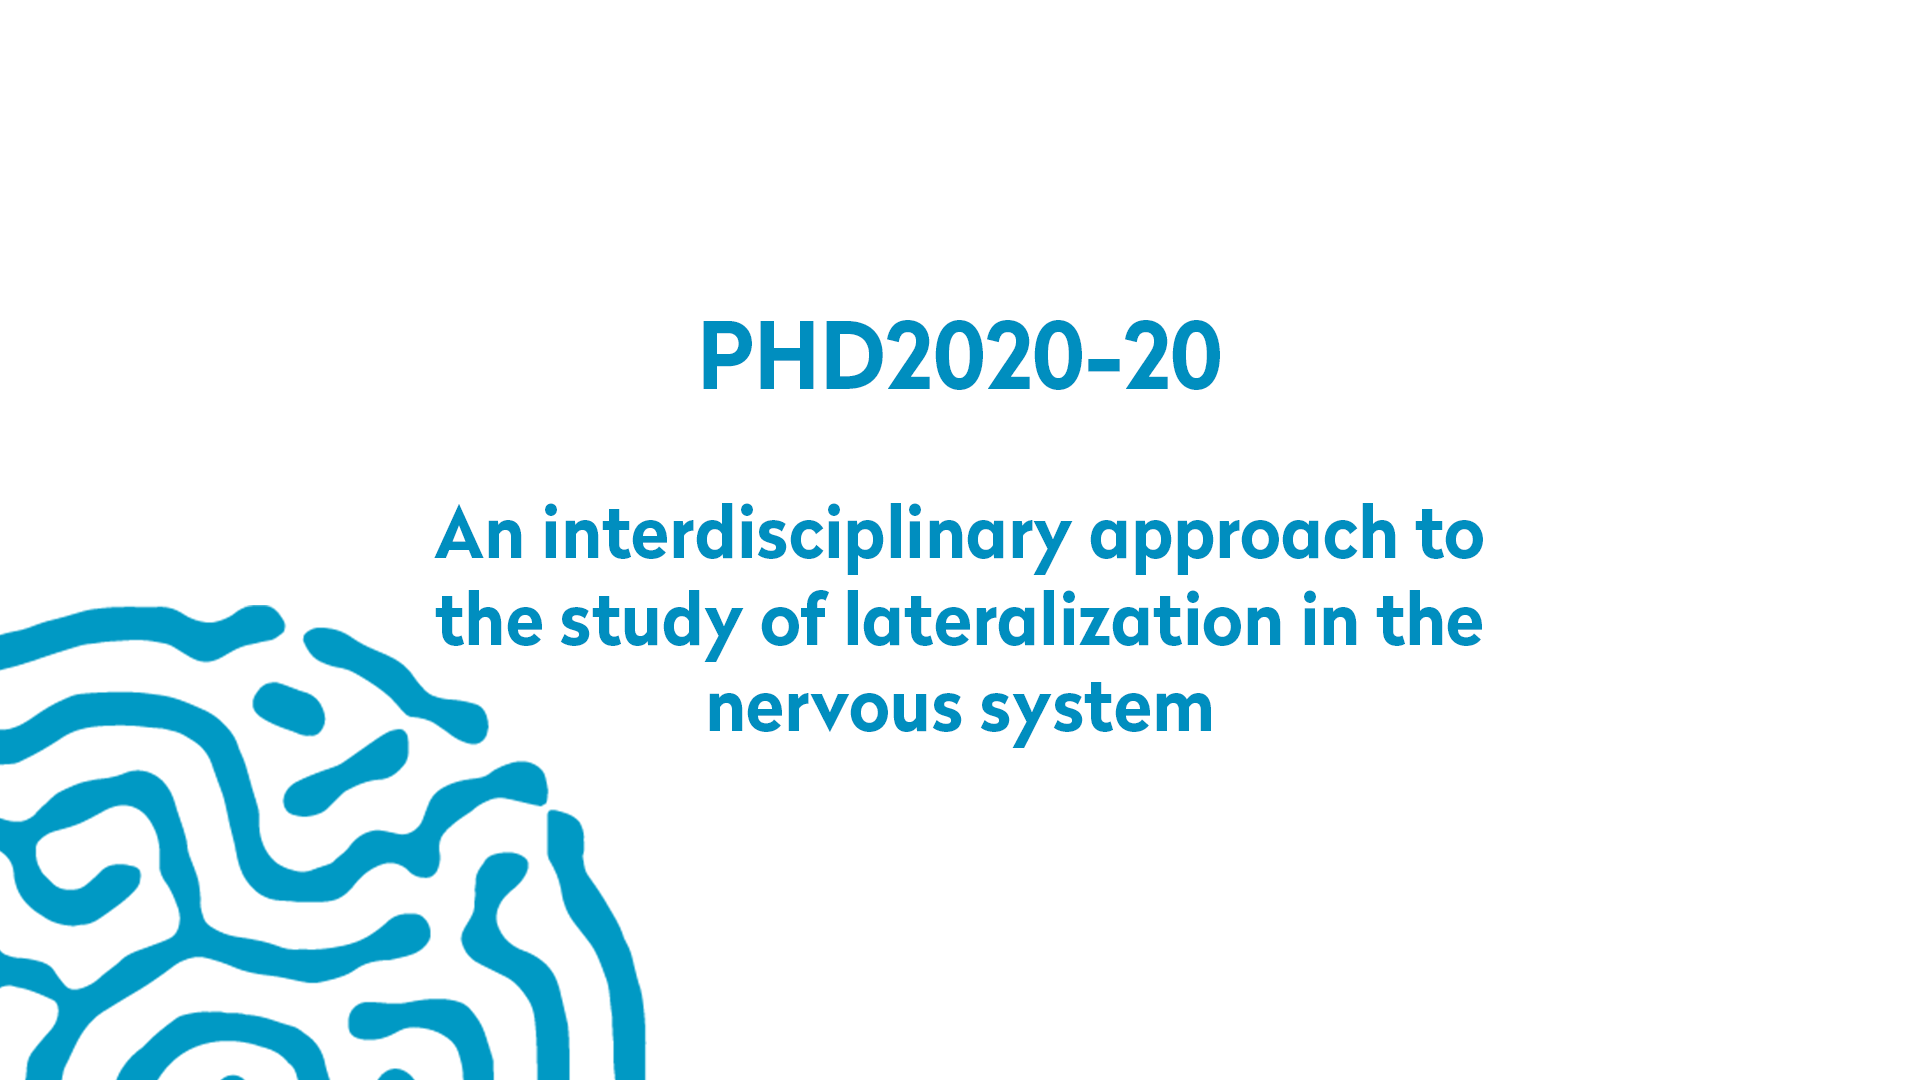 PHD2020-20 | An interdisciplinary approach to the study of lateralization in the nervous system